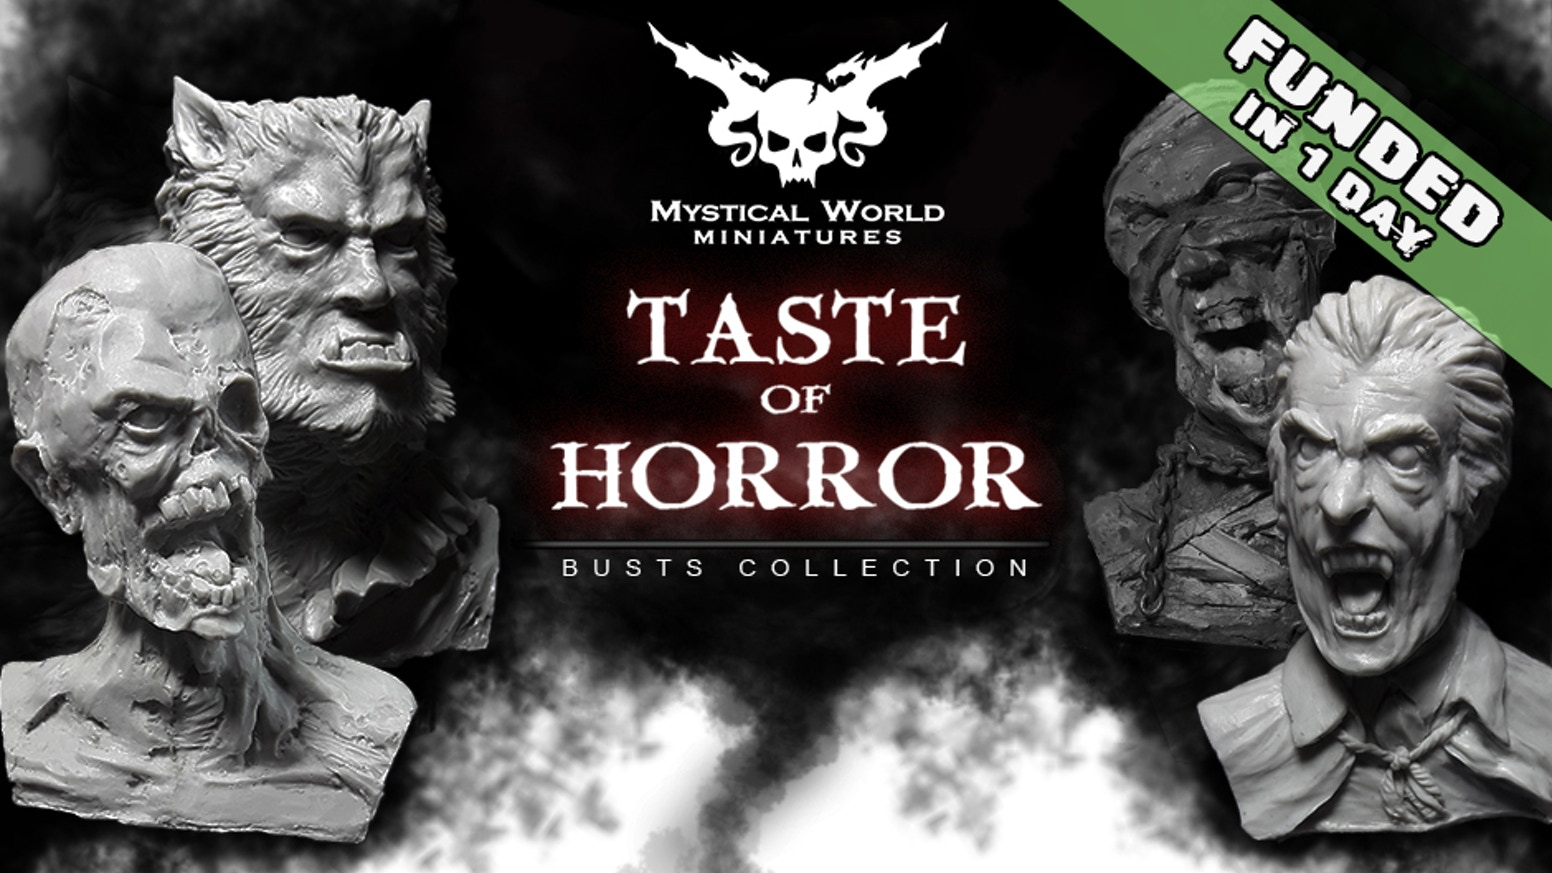 Mystical World Miniatures present Taste of Horror. Resin busts 1/8 scale, horror characters. Please support us and help bring these out